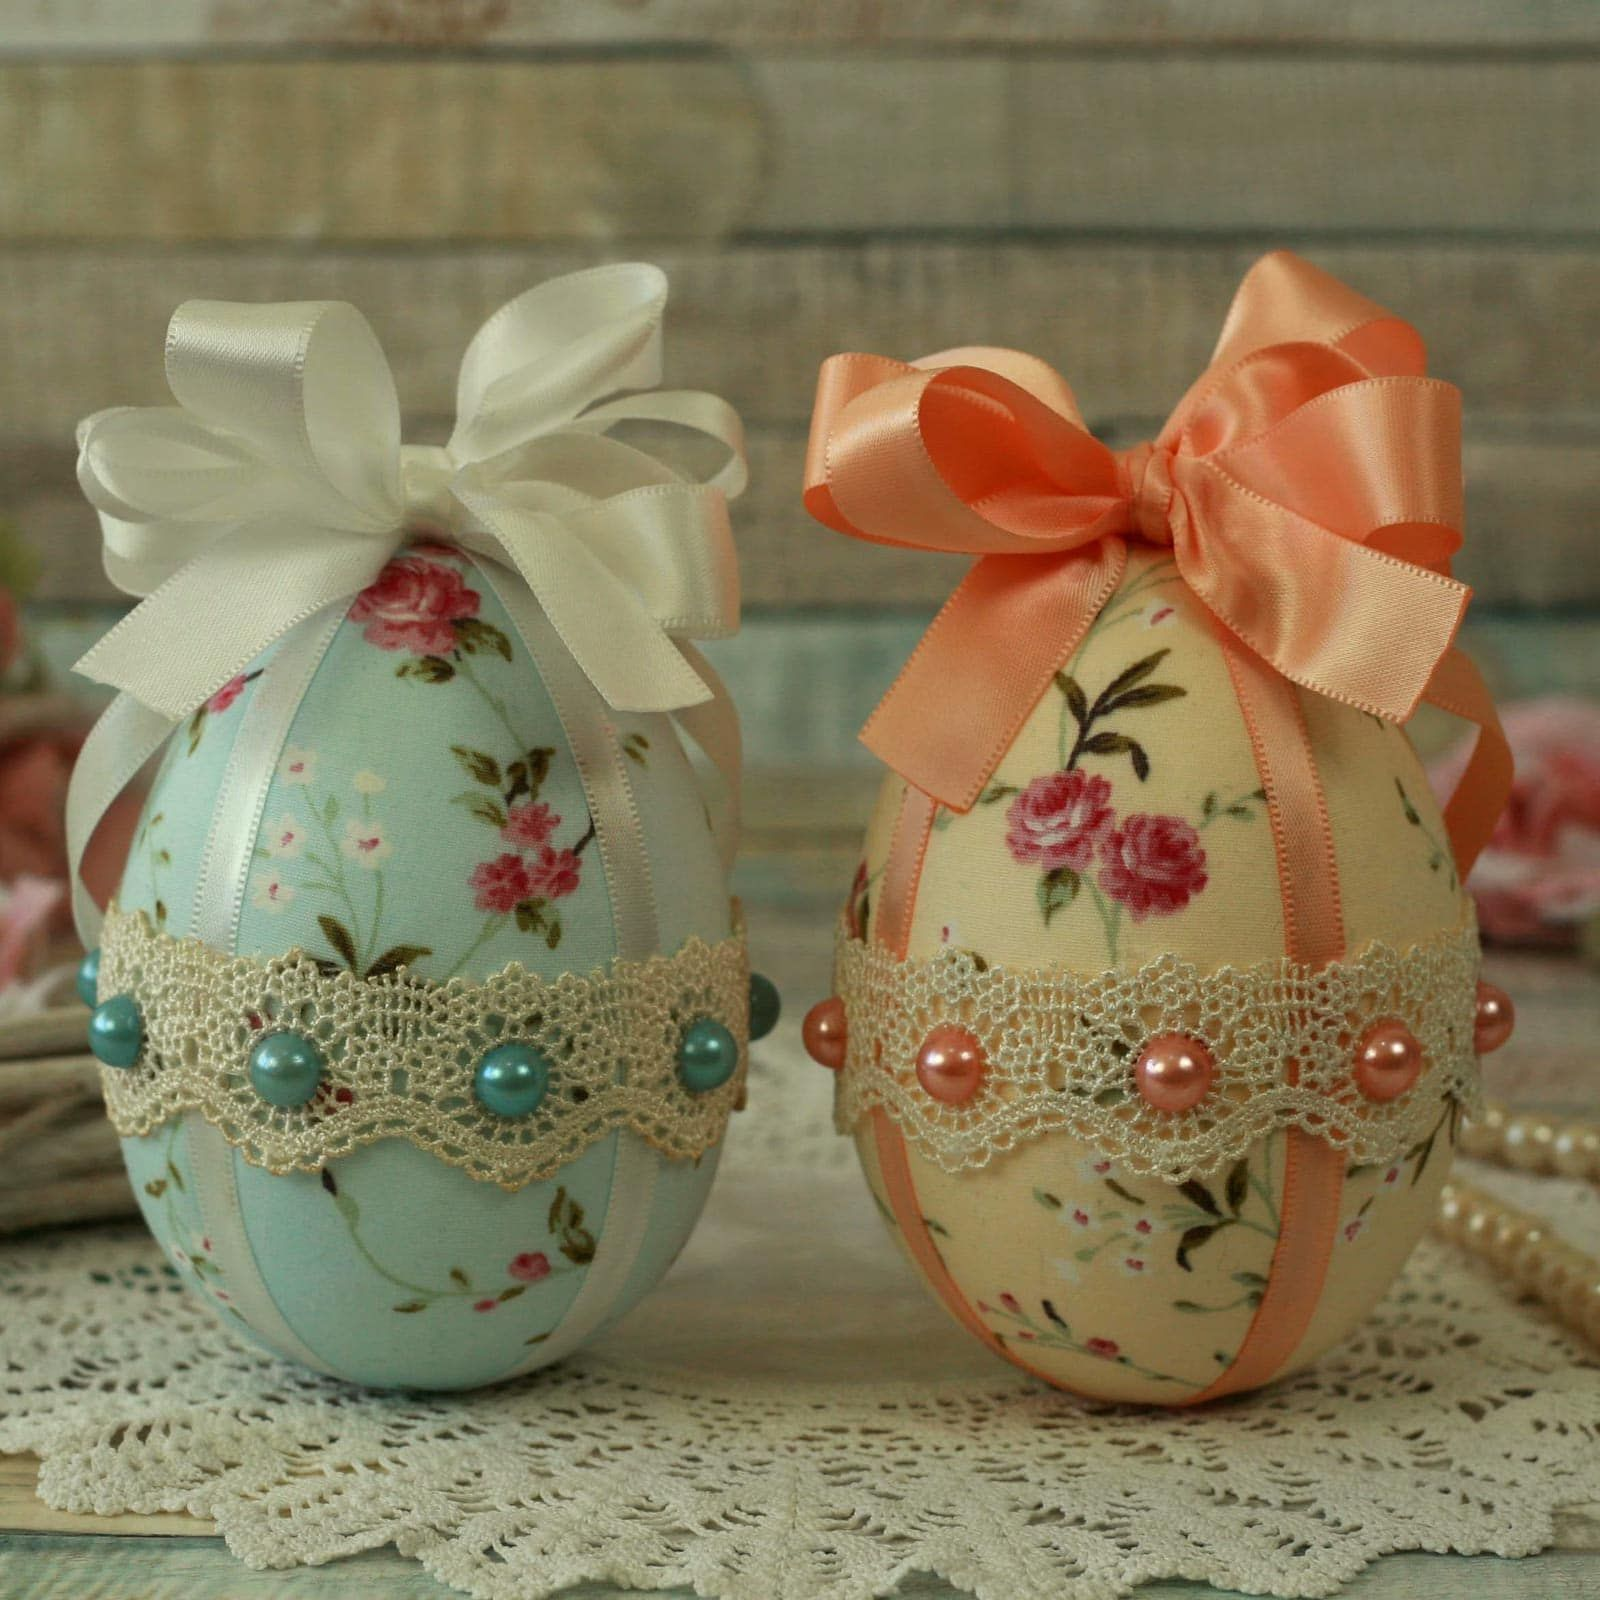 Shabby chic Easter tree decorations.jpg